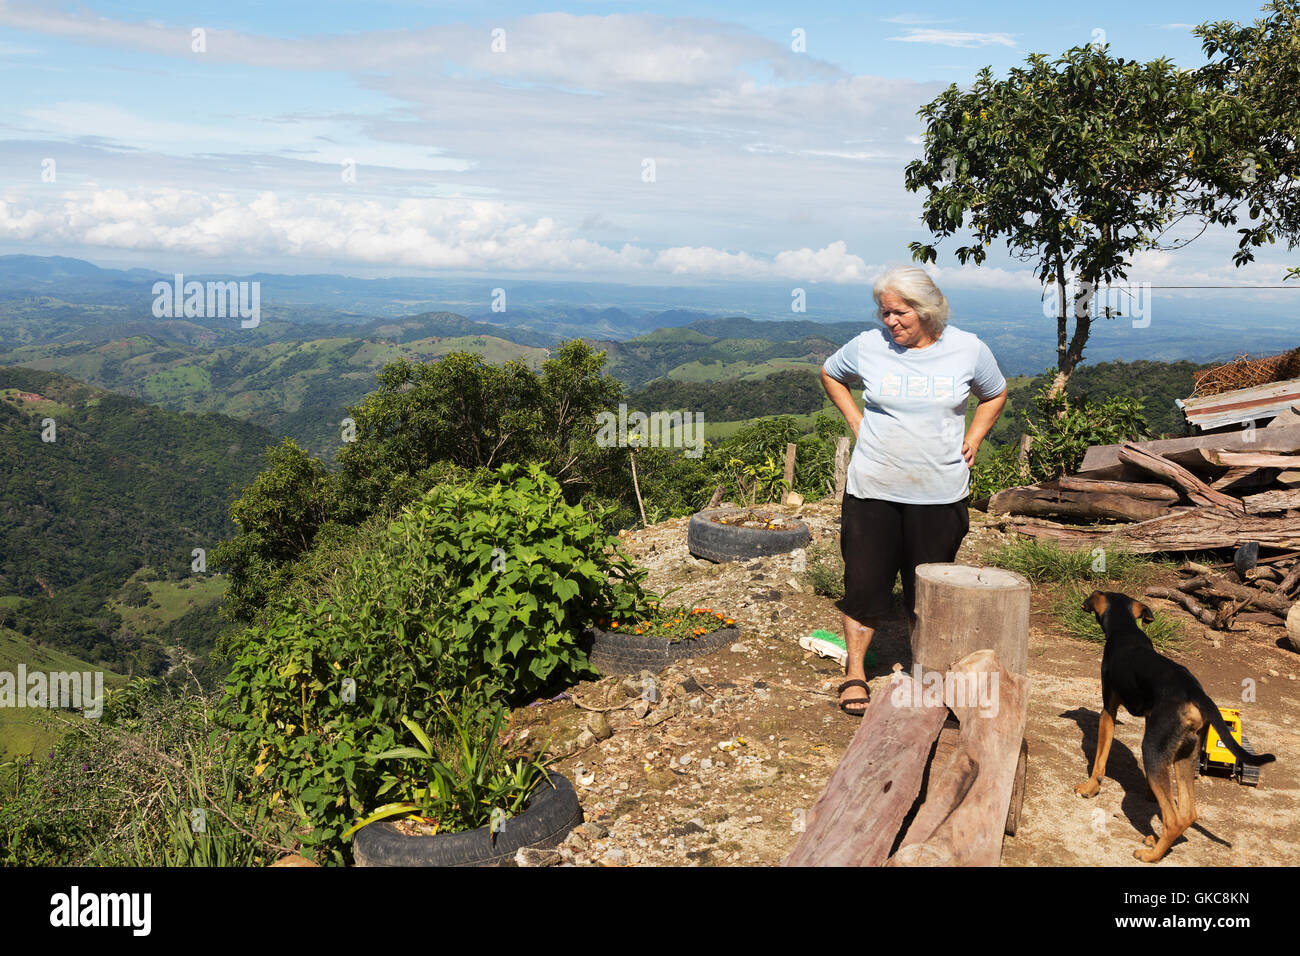 A local costa rican woman and her dog looking out over the countryside, the central highlands near Monteverde, Costa - Stock Image